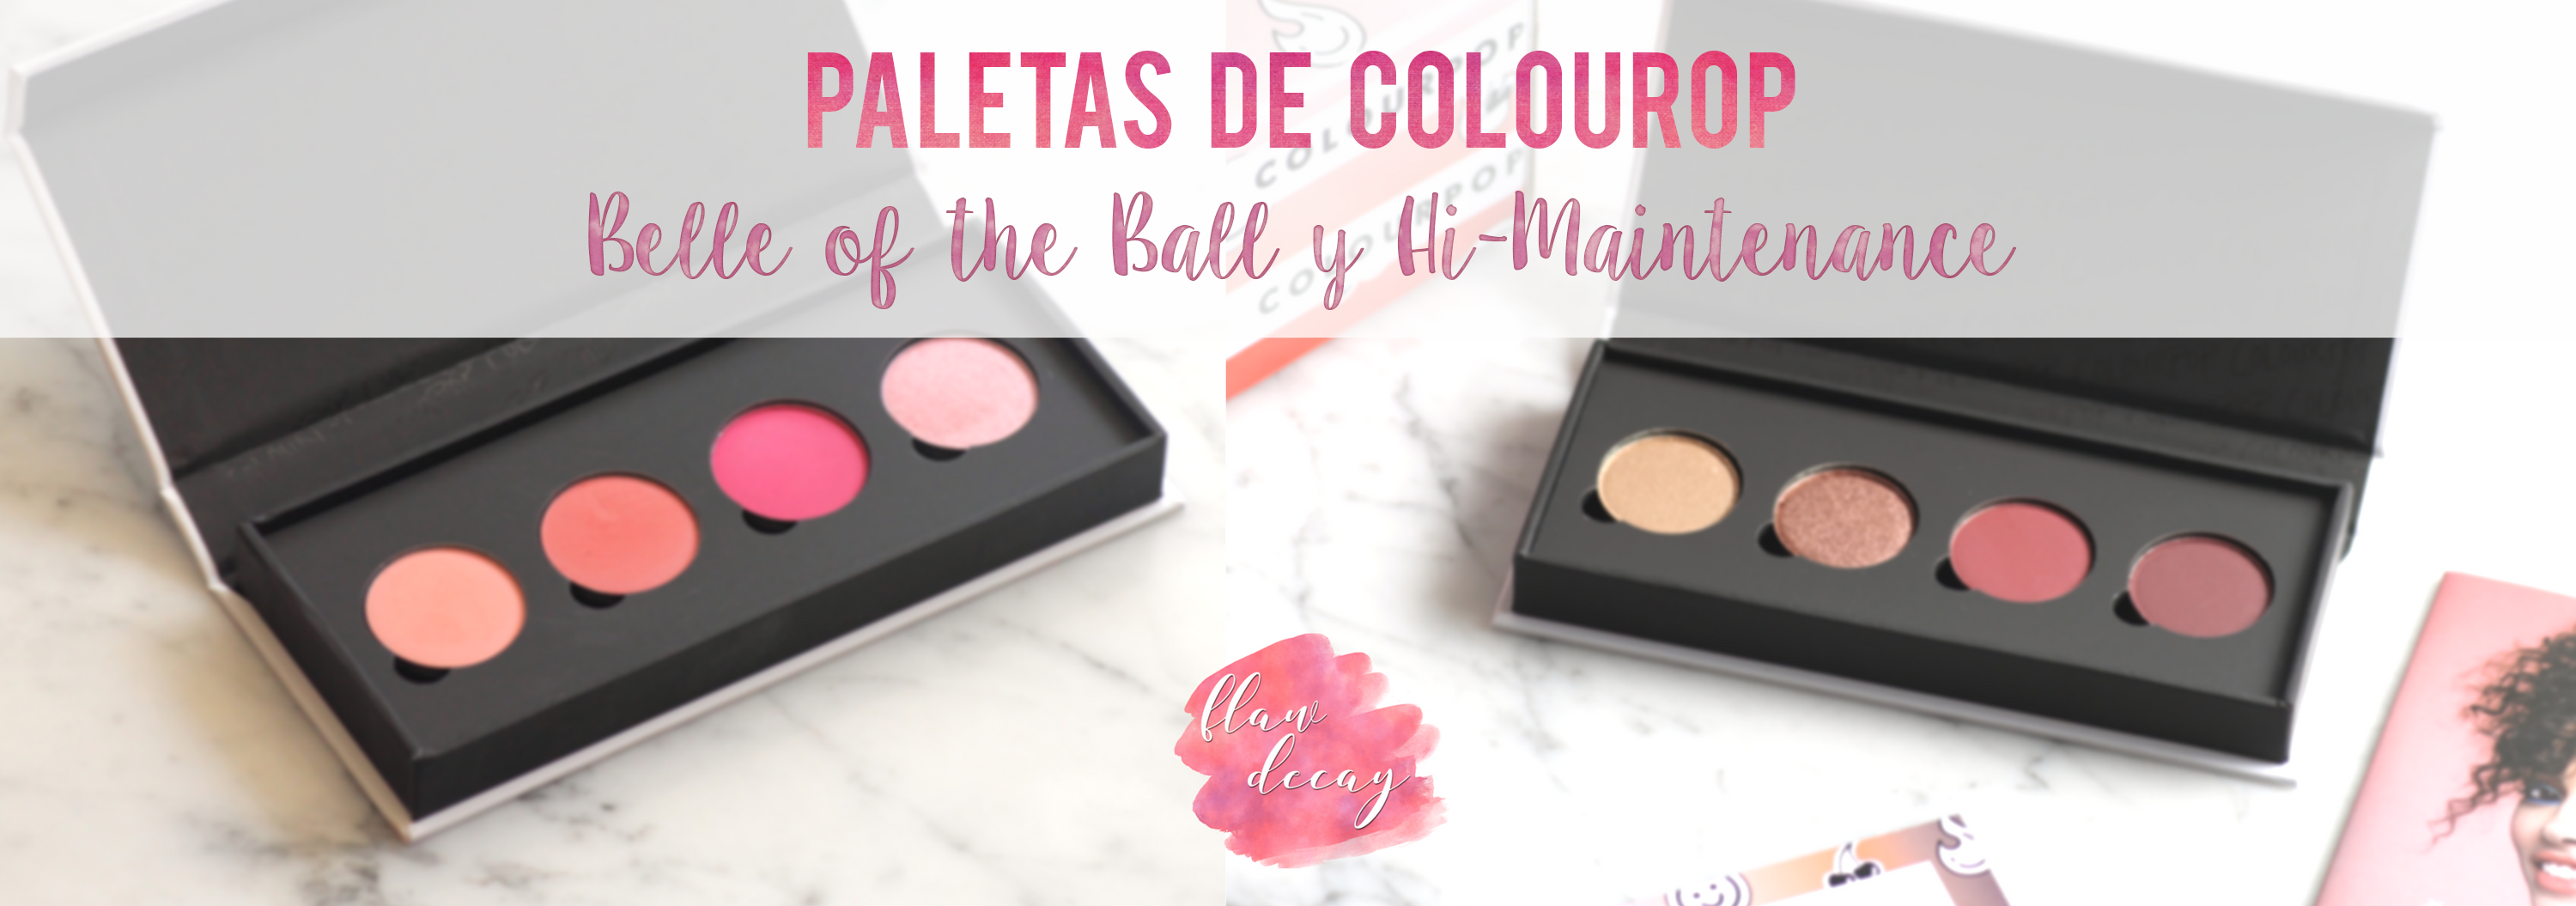 Paletas de Colourpop: Hi-Maintenance y Belle of the Ball (REVIEW)